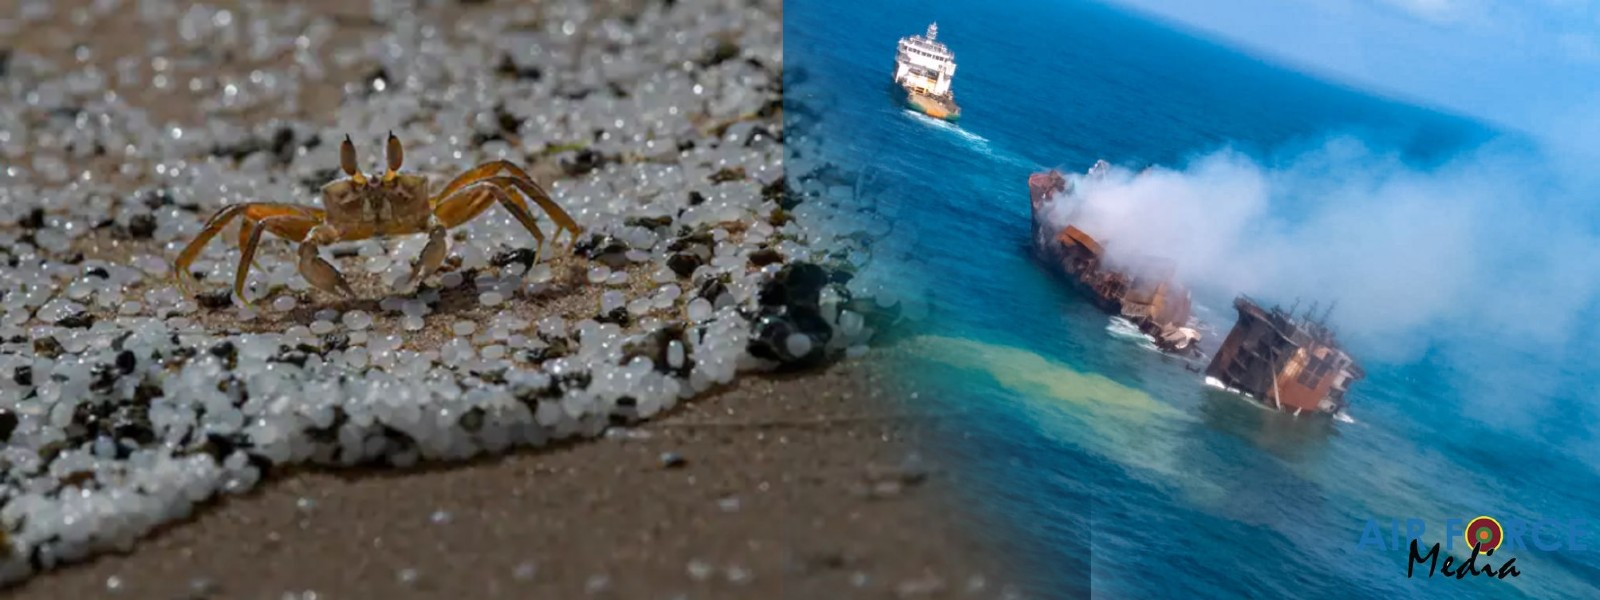 X-Press Pearl caused WORST nurdles disaster in the world